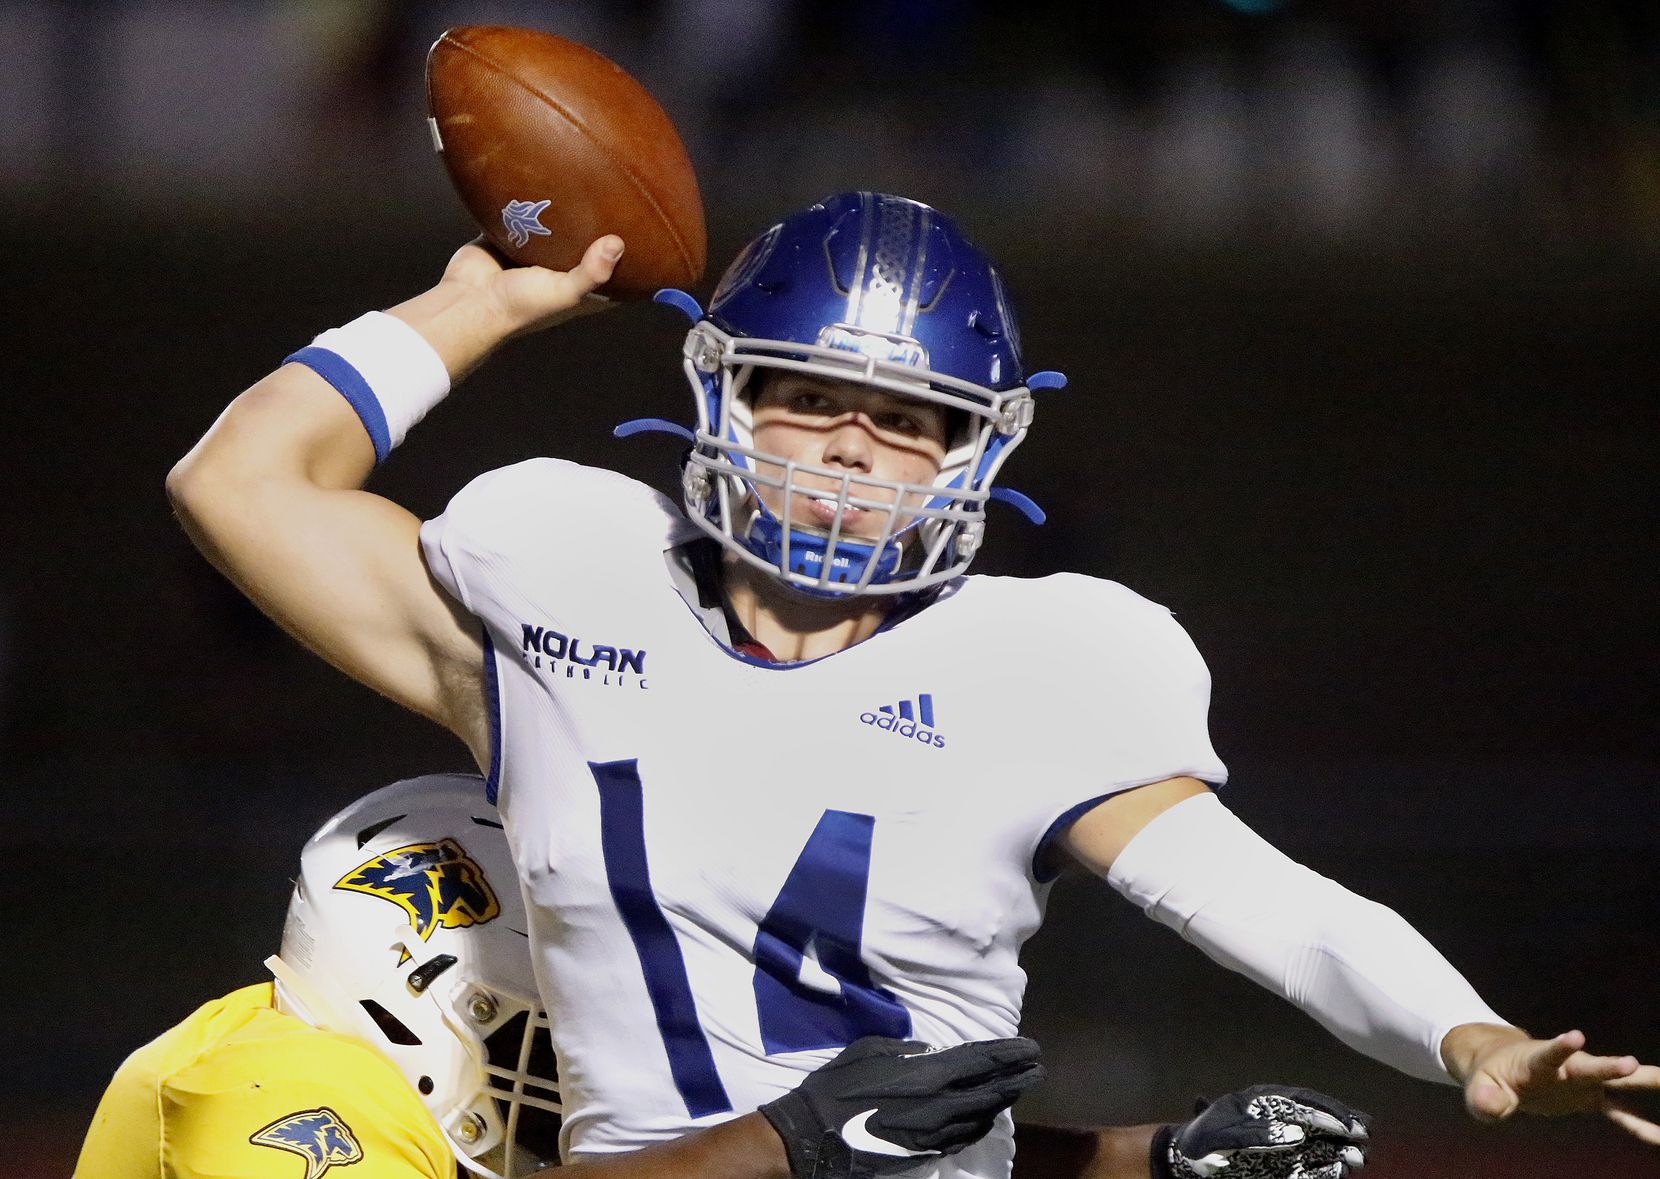 Nolan Catholic High School quarterback Jimmy Taylor (14) is hurried to get off a pass during the first half as Prestonwood Christian Academy hosted Nolan Catholic High School at Lions Stadium in Plano on Friday night, October 9, 2020. (Stewart F. House/Special Contributor)